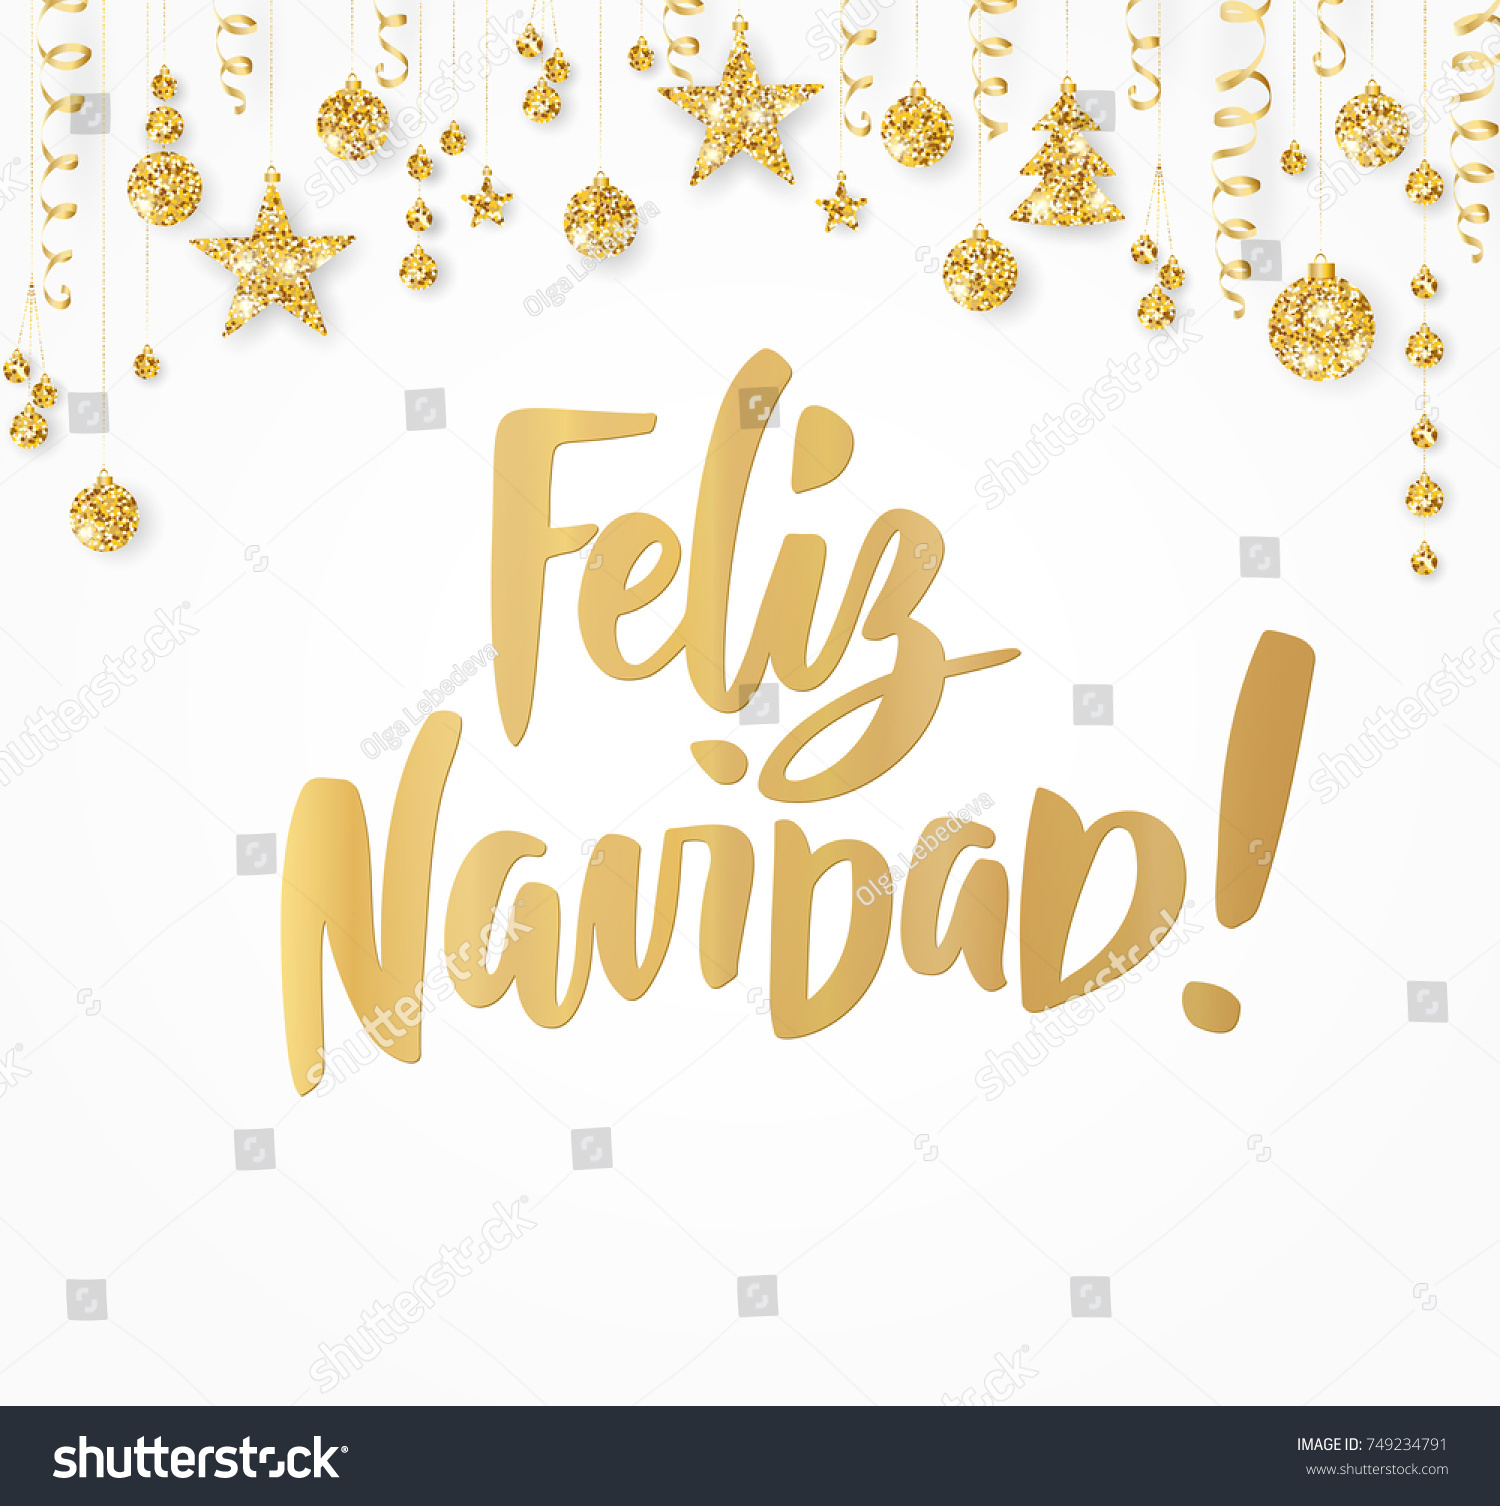 Feliz navidad merry christmas spanish quote stock vector 749234791 feliz navidad merry christmas spanish quote hand drawn holiday greetings text golden glitter kristyandbryce Images